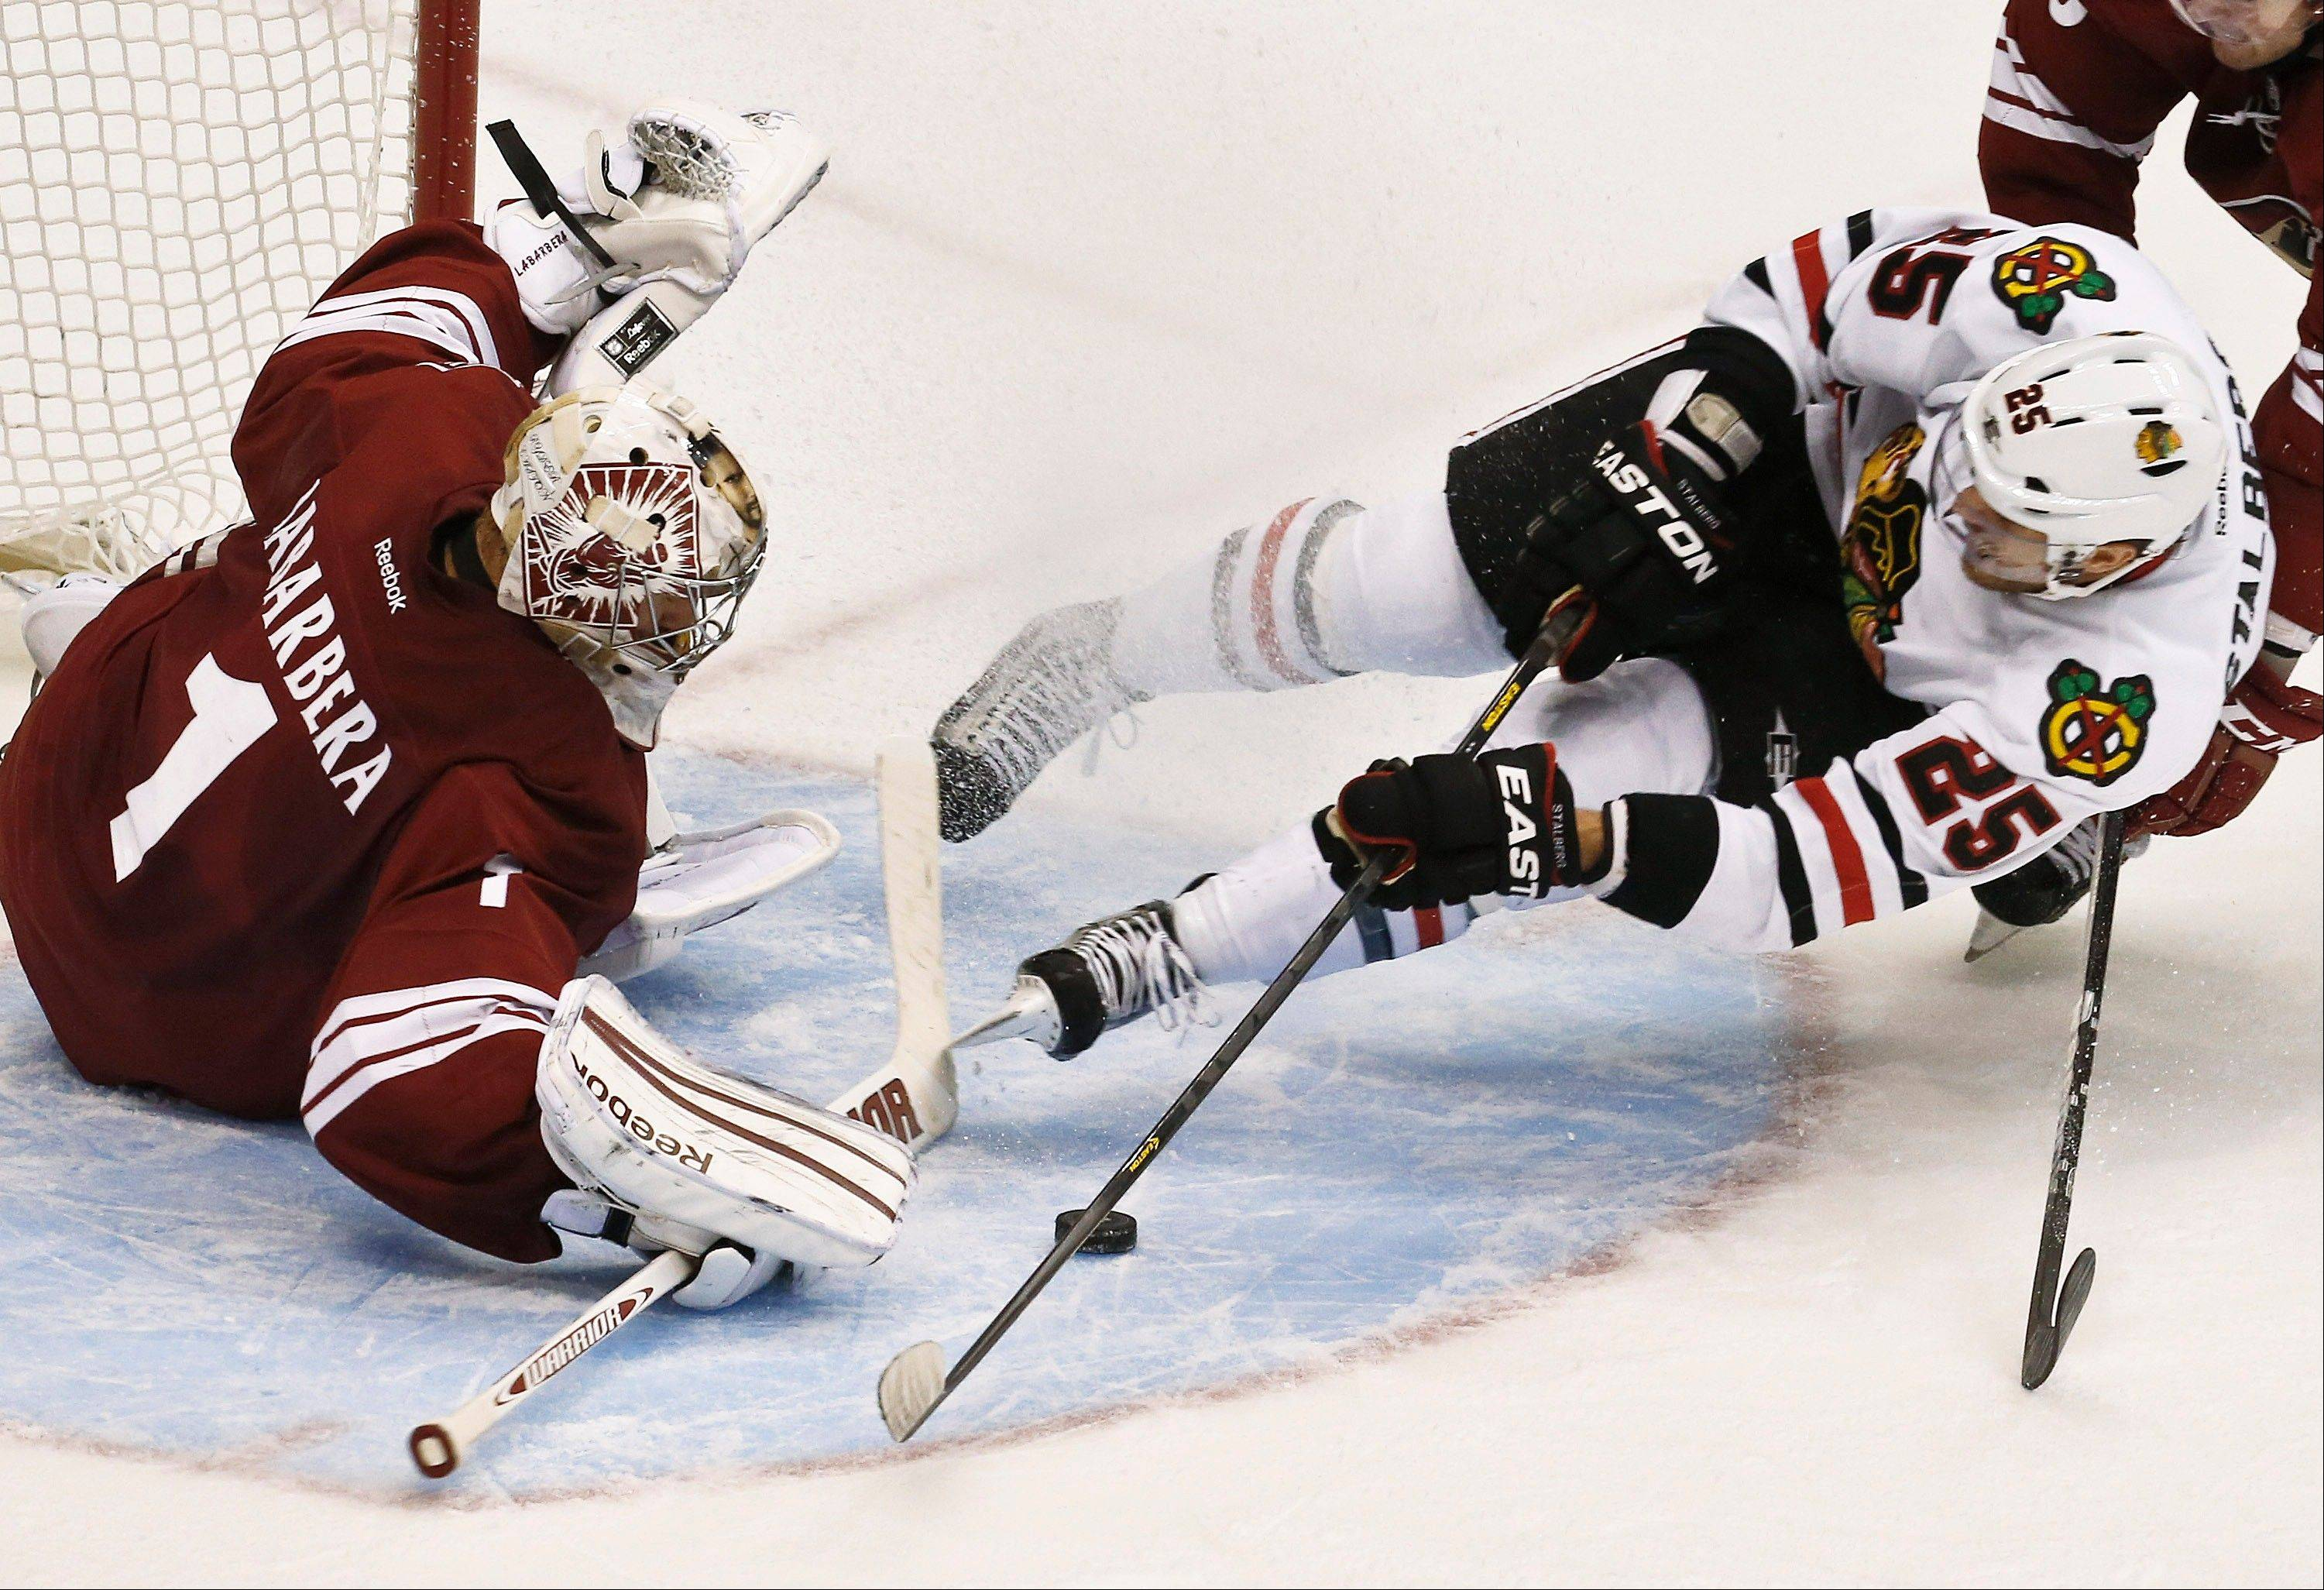 Viktor Stalberg of the Blackhawks tries to gets a shot off as he falls down in front of Phoenix Coyotes' Jason LaBarbera during the third period Thursday.